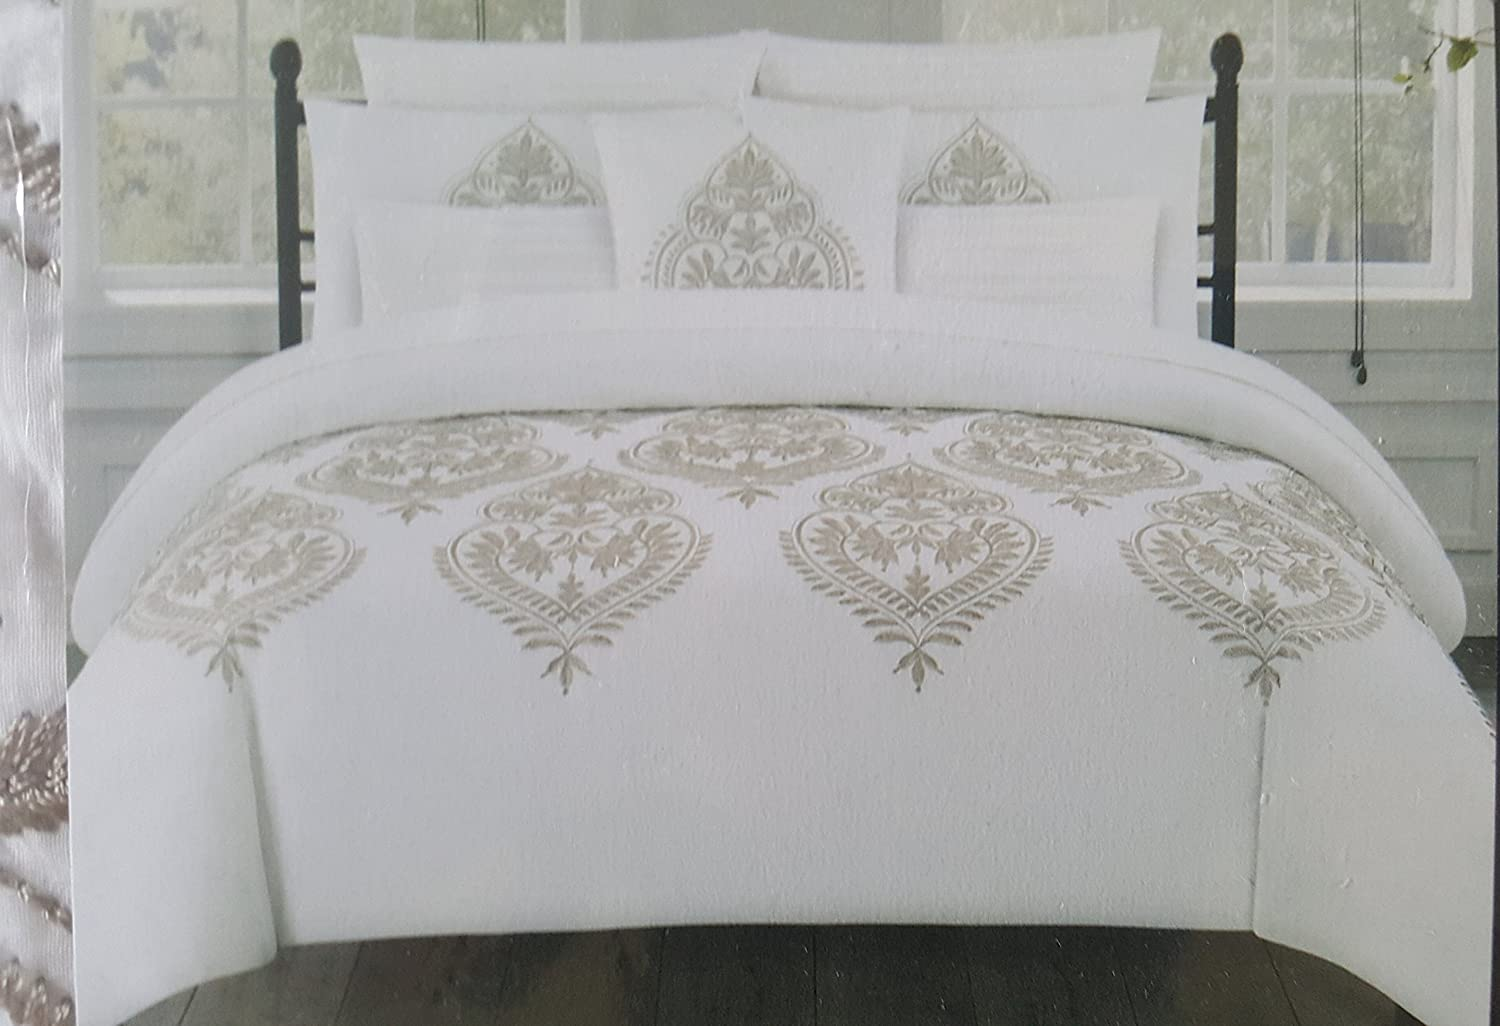 Tahari Home Marossy Embroidered Damask Medallions 3pc King Duvet Cover Set Taupe White